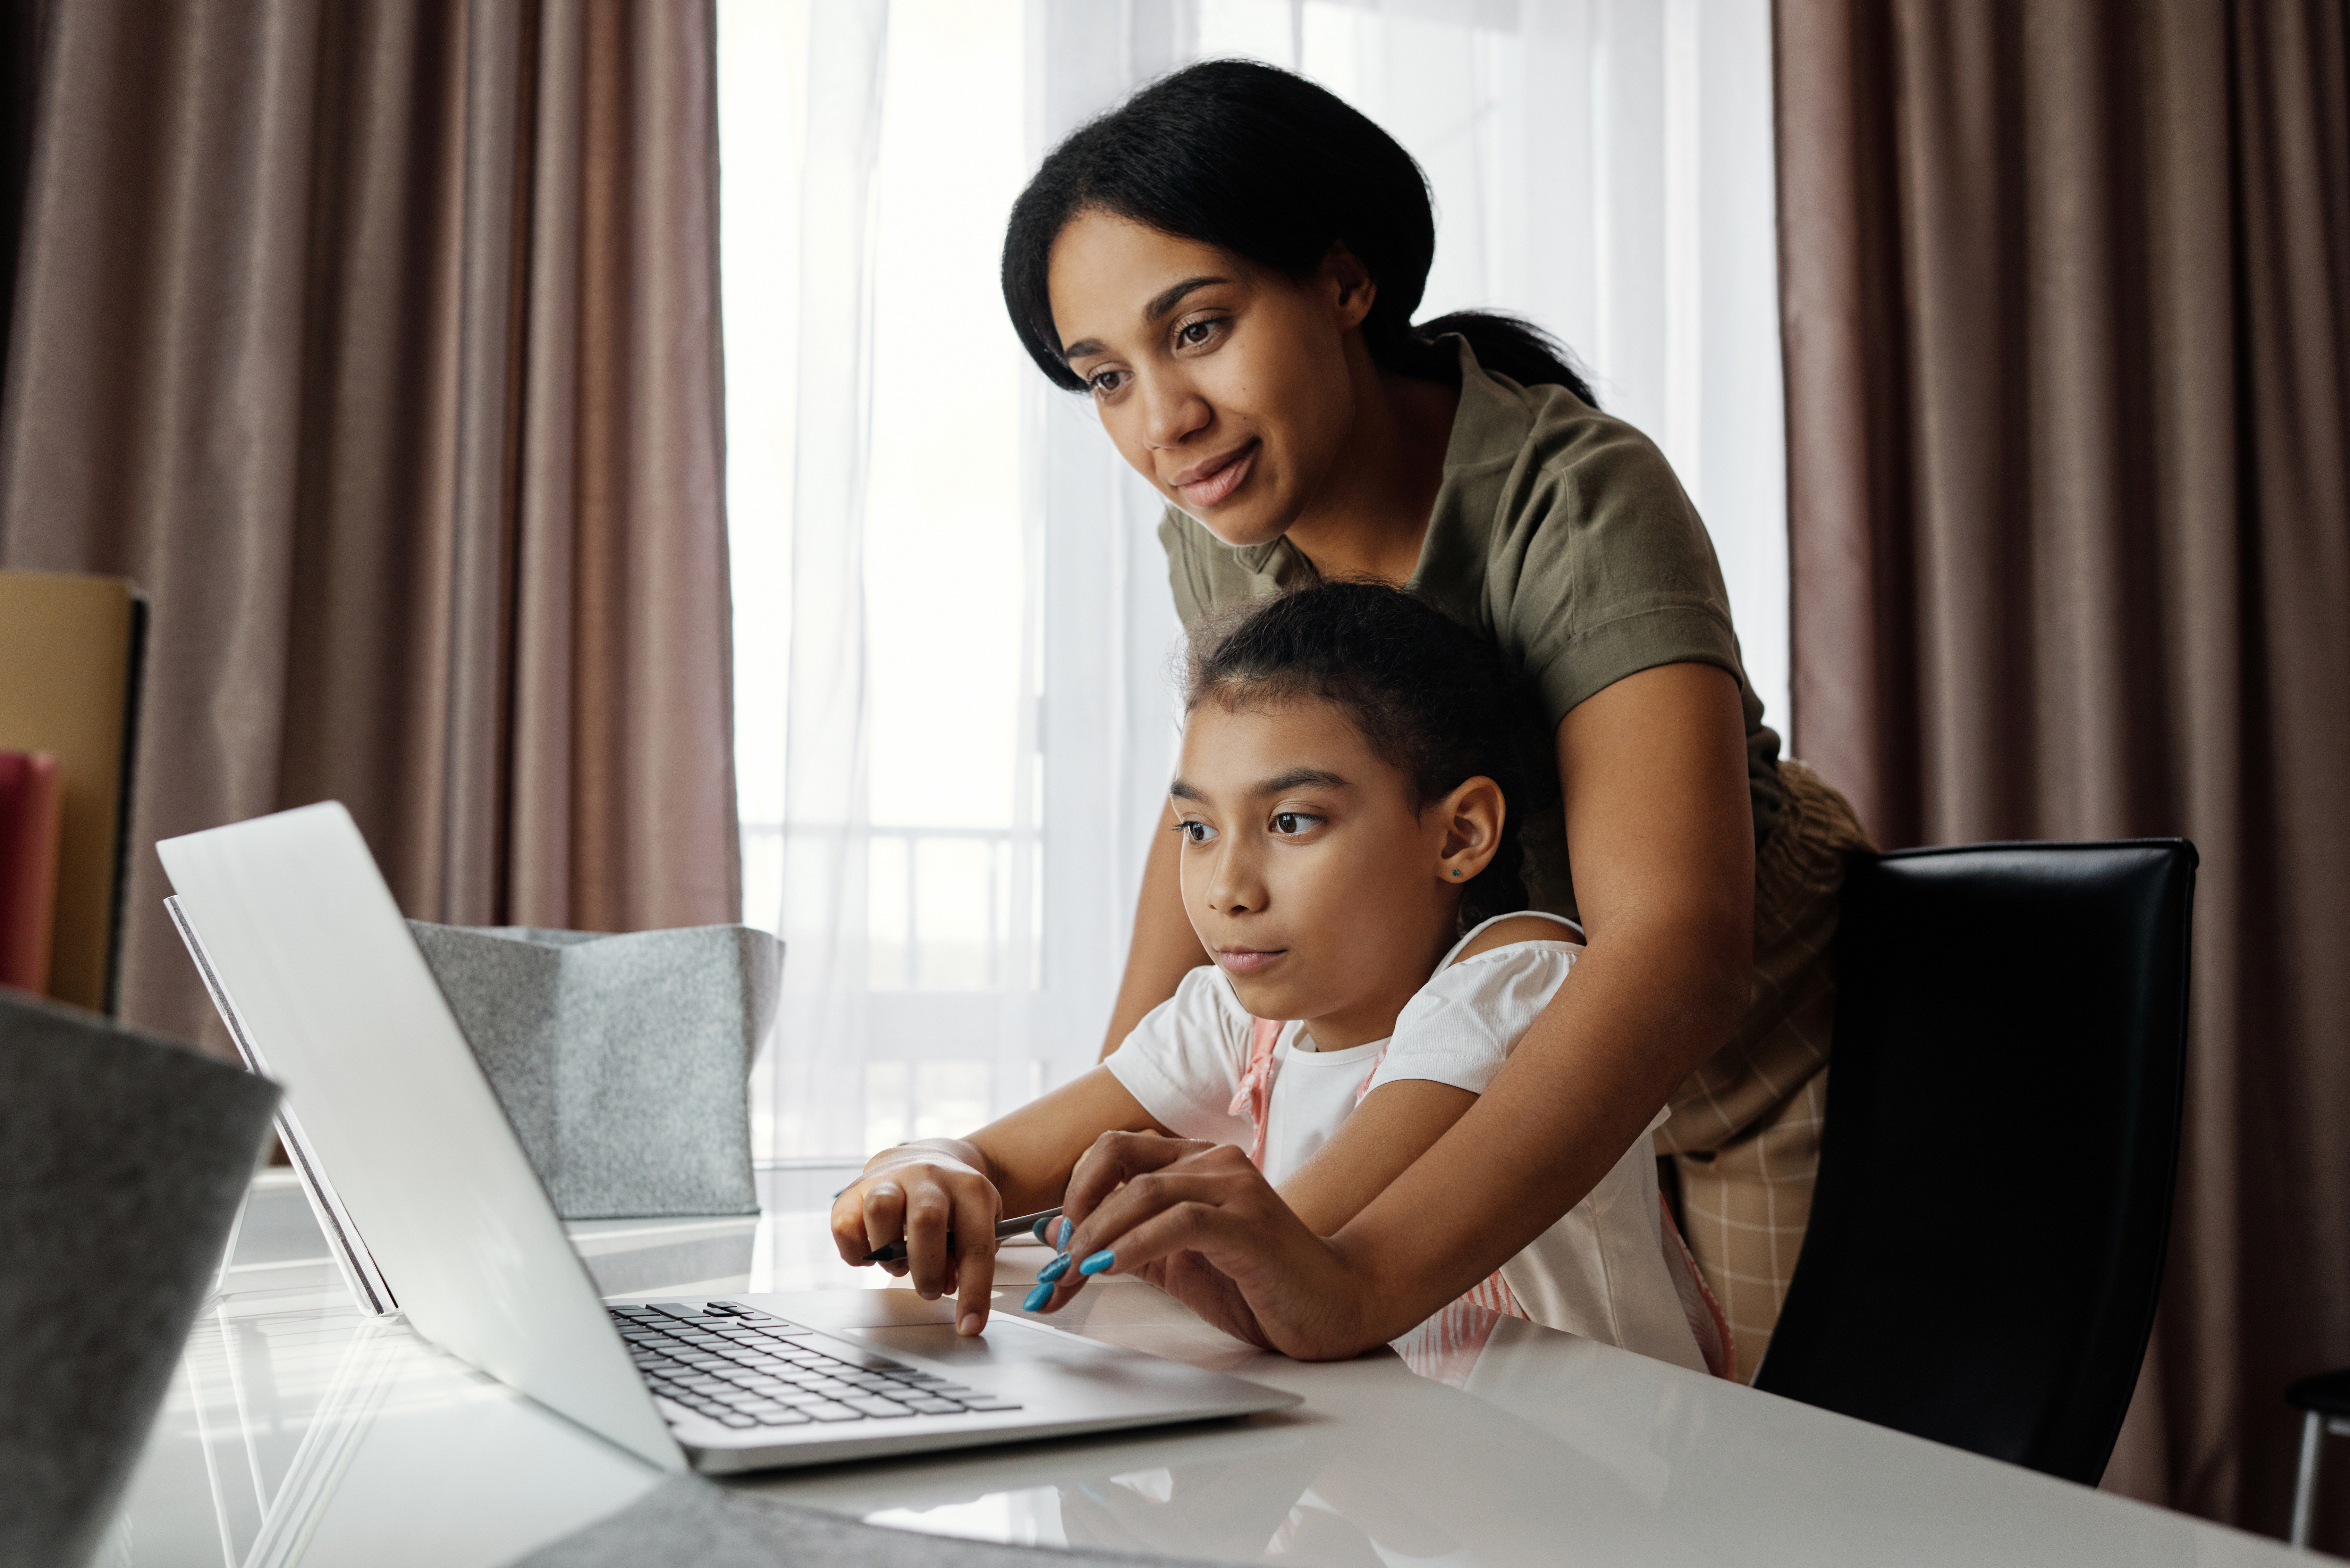 mother-helping-her-daughter-use-a-laptop-4260325